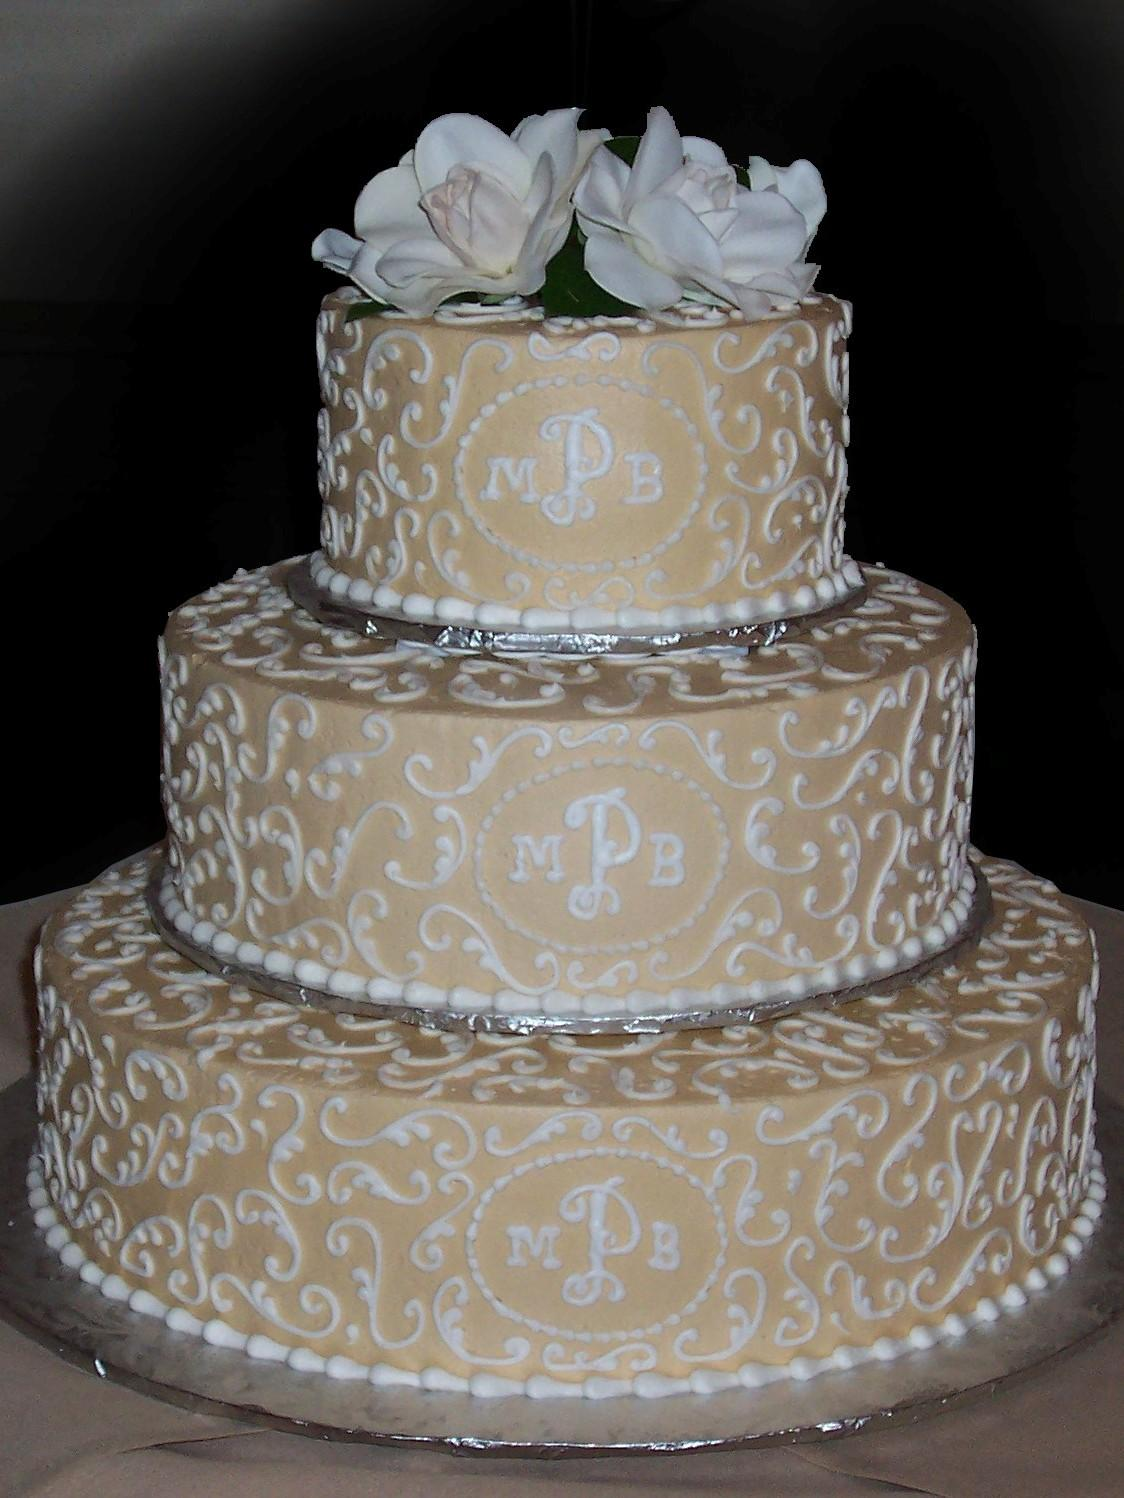 Champagne Gold Buttercream Iced 3 Tiered Wedding Cake Contrasting White Scroll Work On All